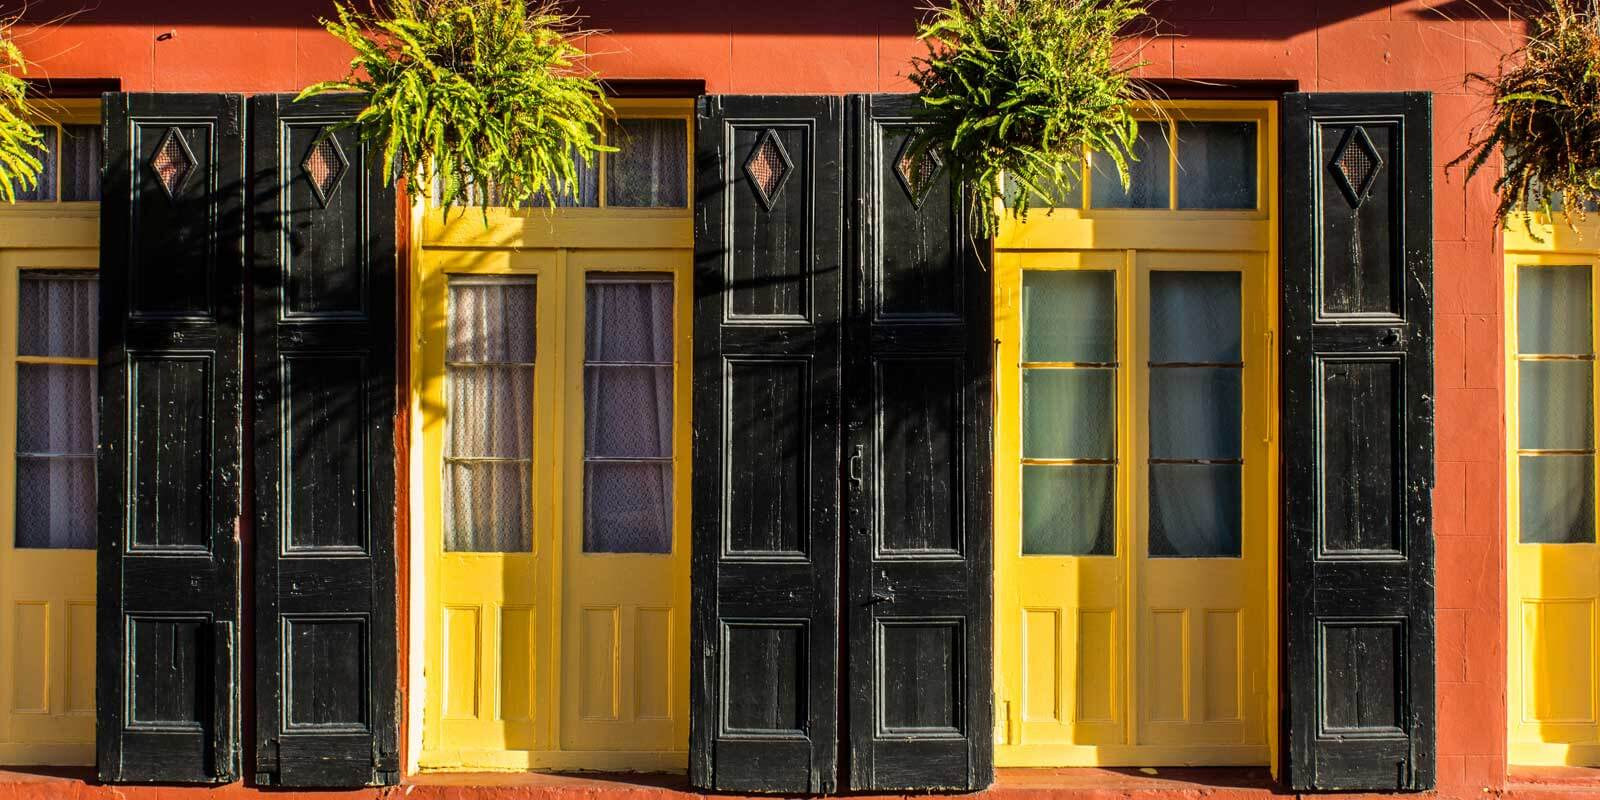 Close up of an orange building with bright yellow doors, black shutters, and lush hanging plants.